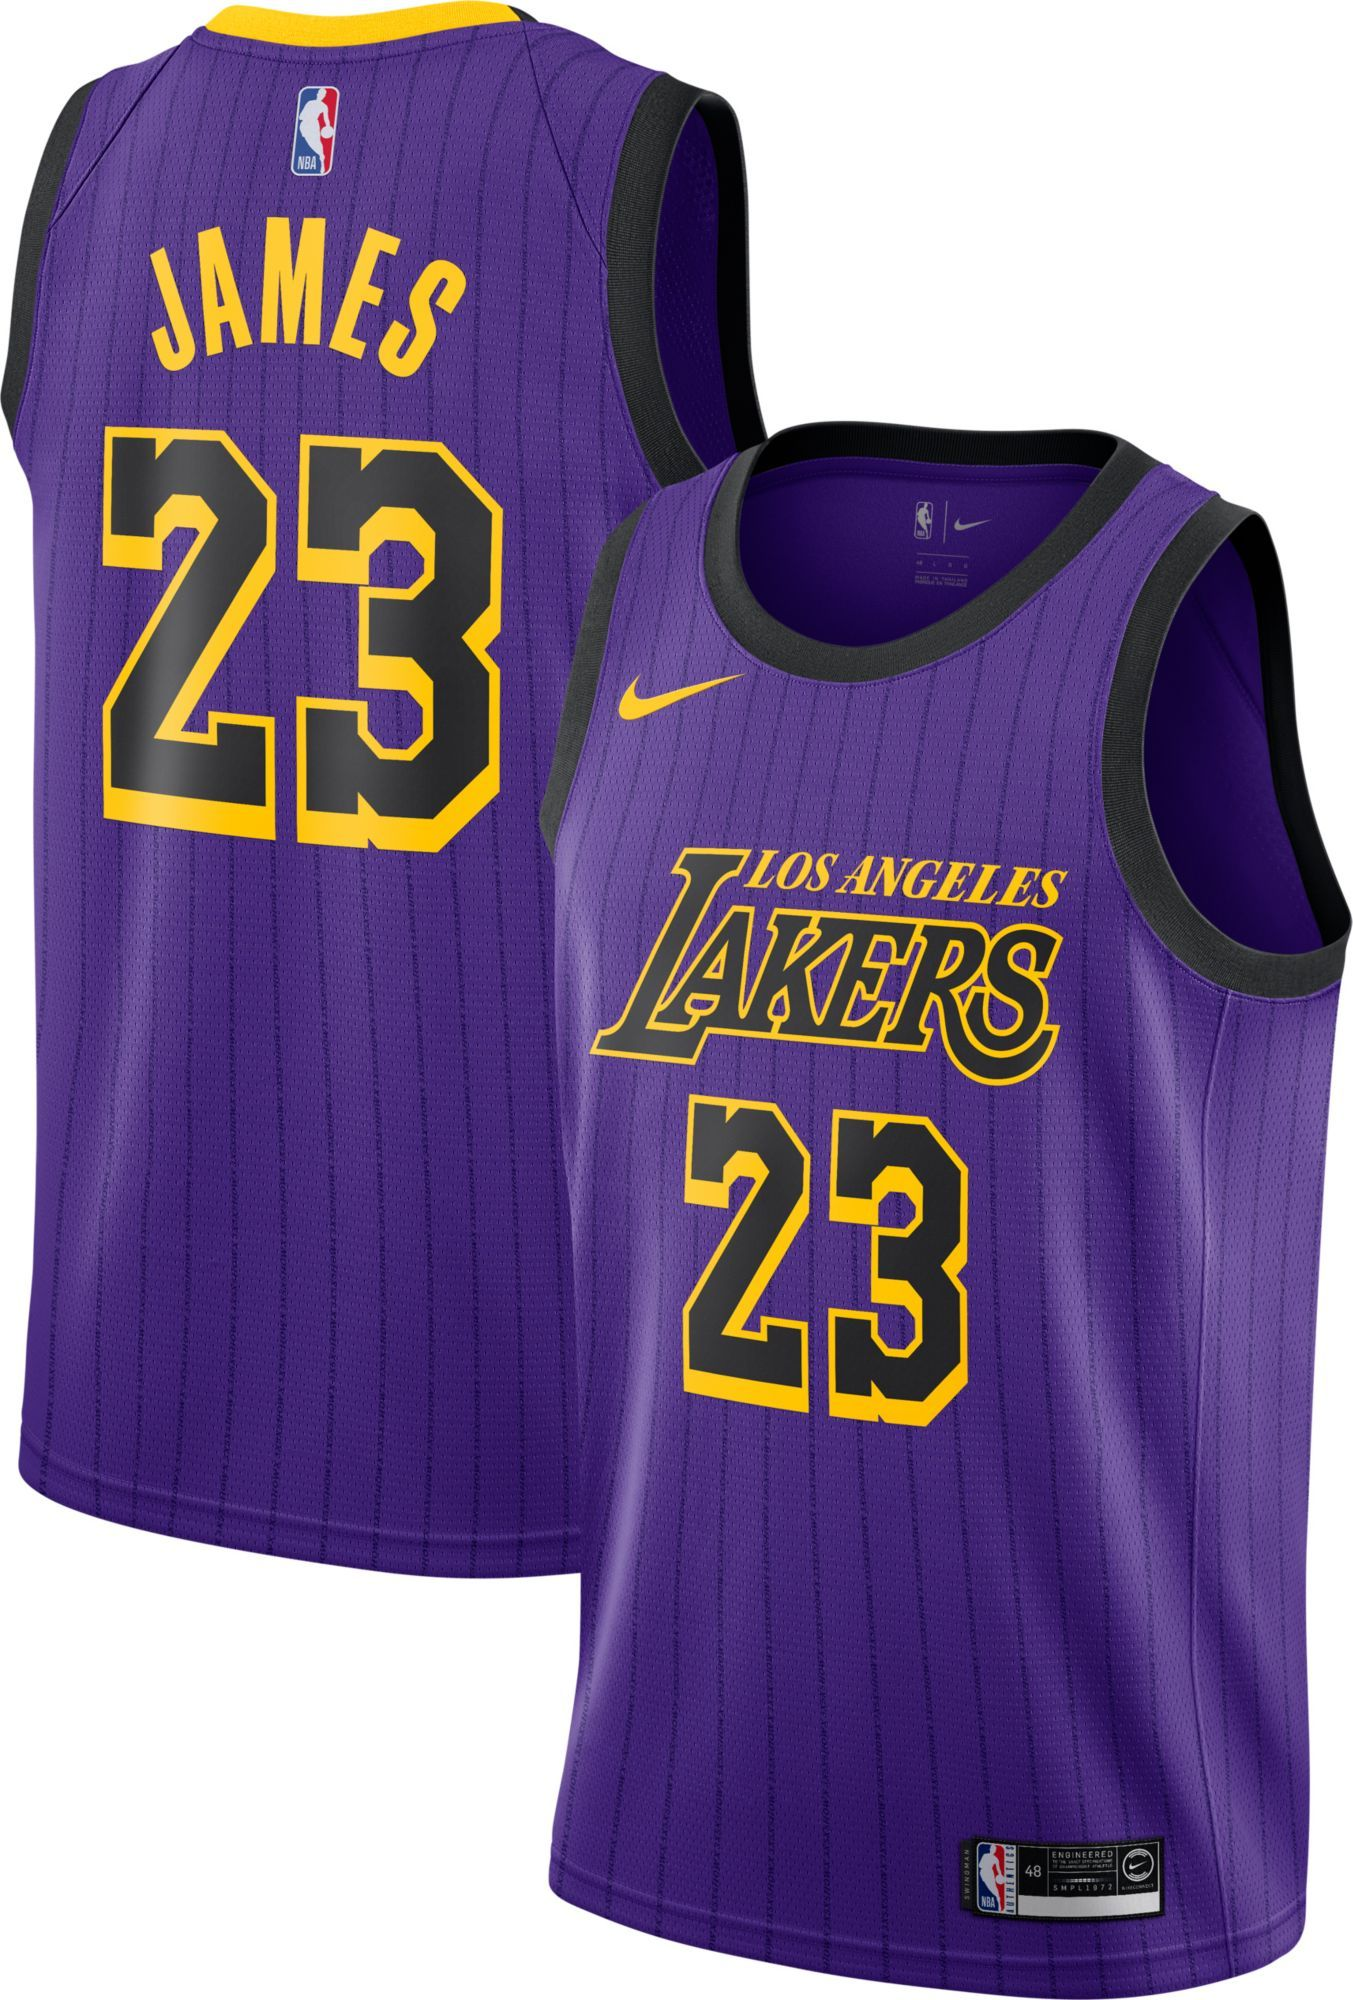 buy popular af600 70fe6 Nike Men's Los Angeles Lakers LeBron James Dri-FIT City ...